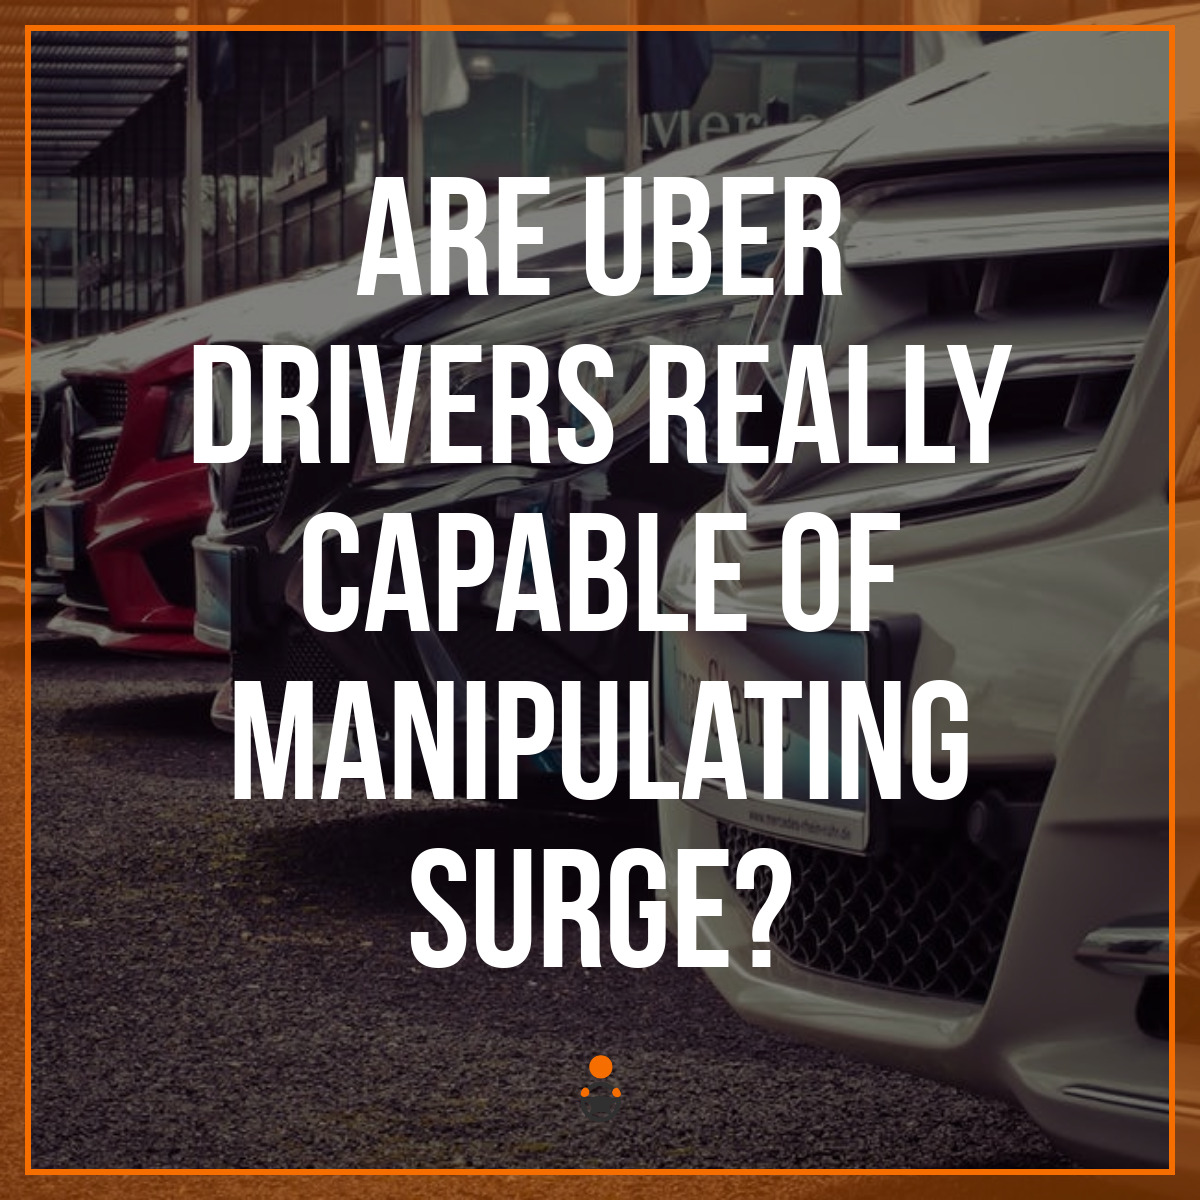 Are Uber Drivers Really Capable of Manipulating Surge?